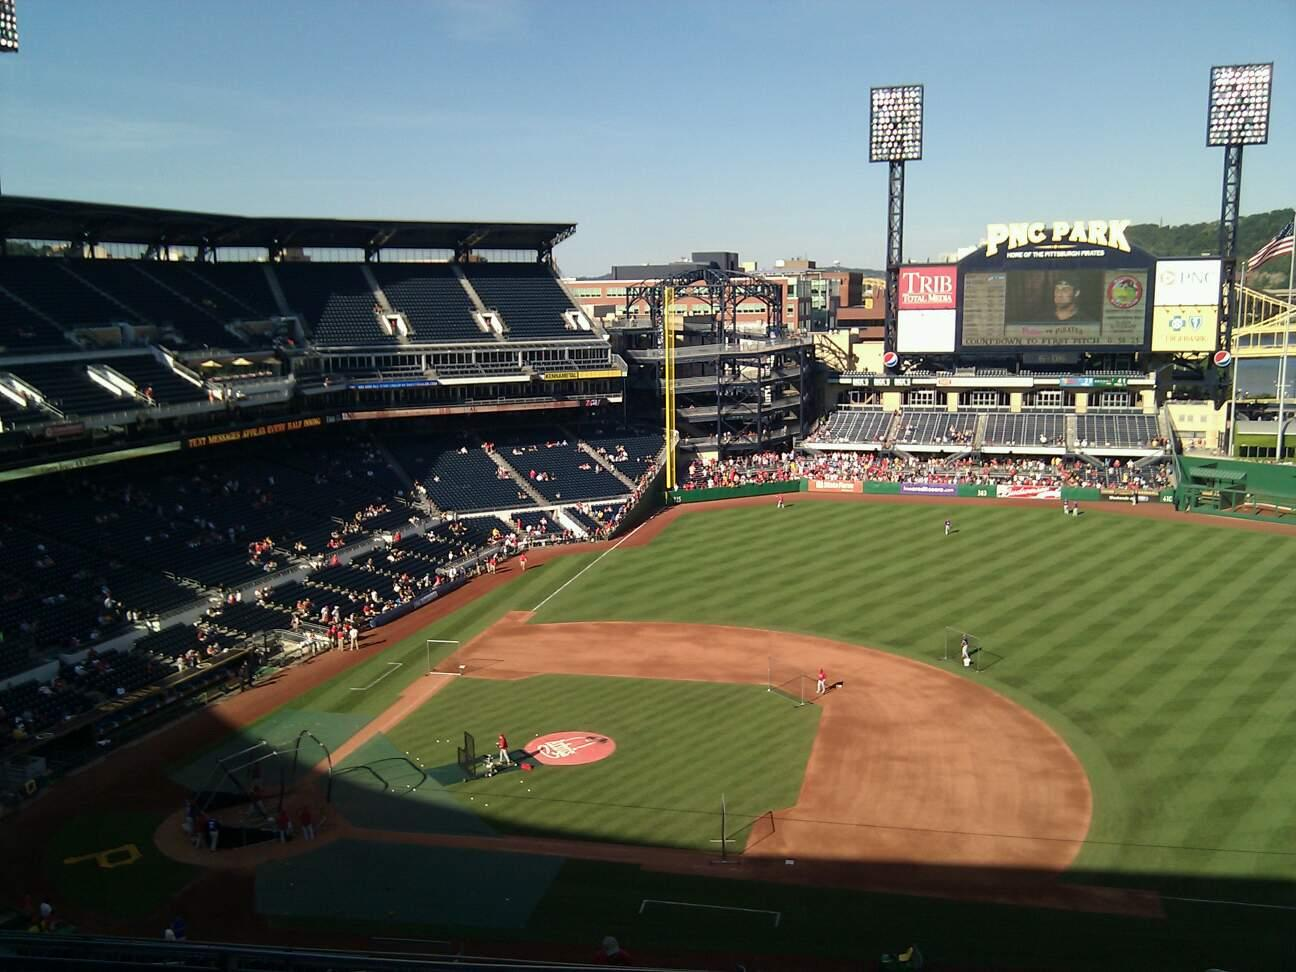 PNC Park Section 310 Row n Seat 14